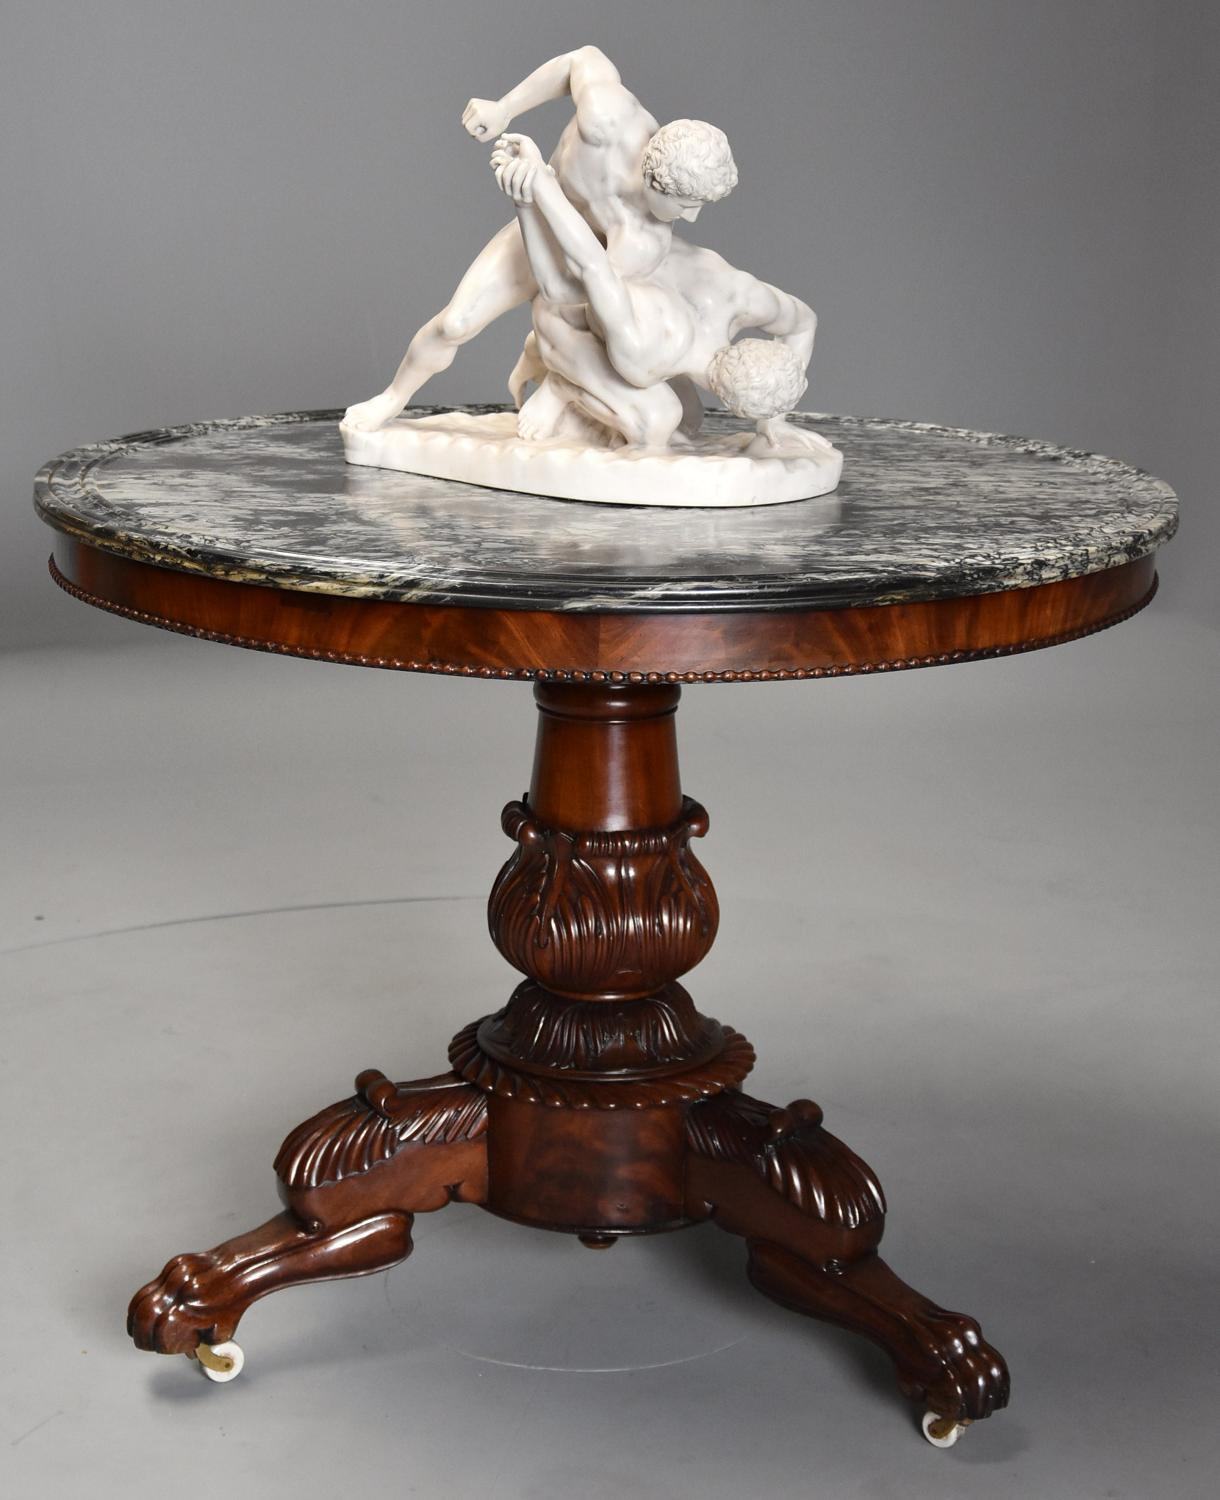 19th century French mahogany Gueridon table with original marble top